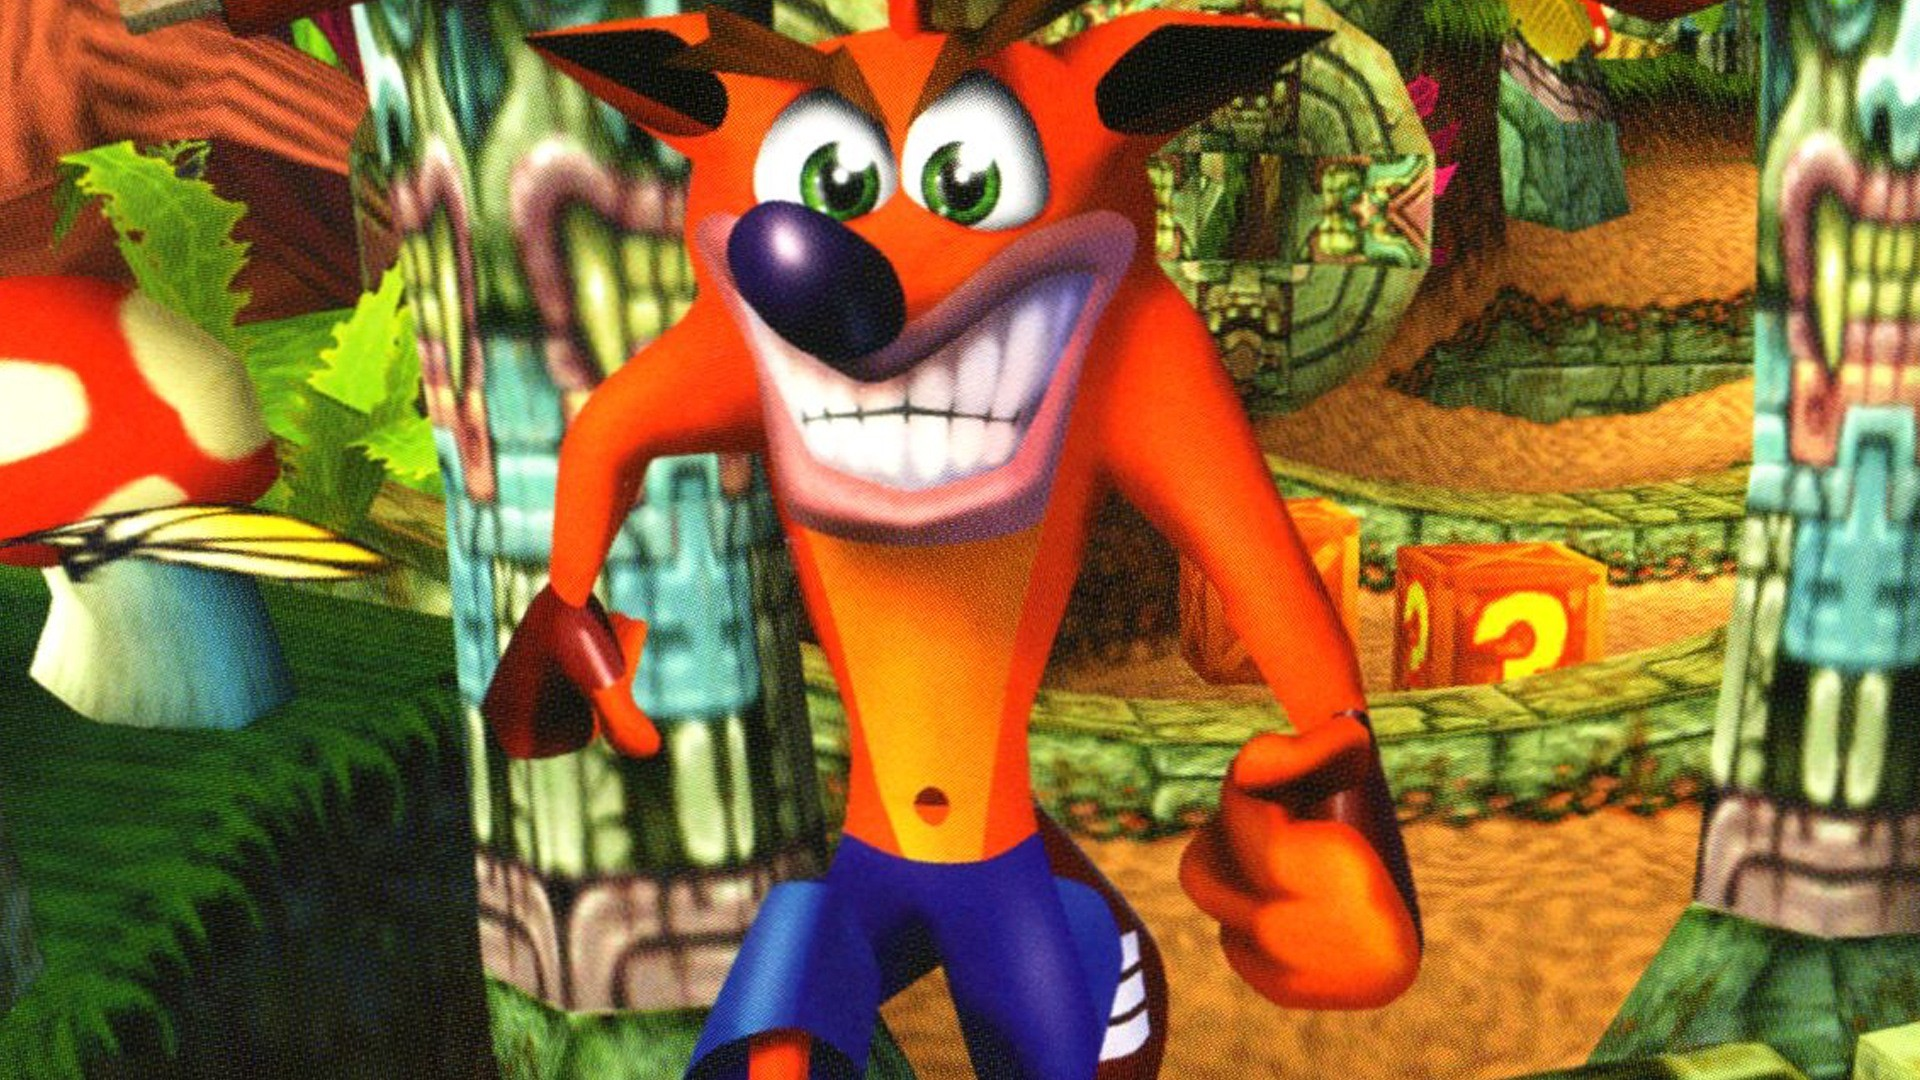 1920x1080 Crash Bandicoot HD Wallpaper | Hintergrund |  | ID:796268 -  Wallpaper Abyss